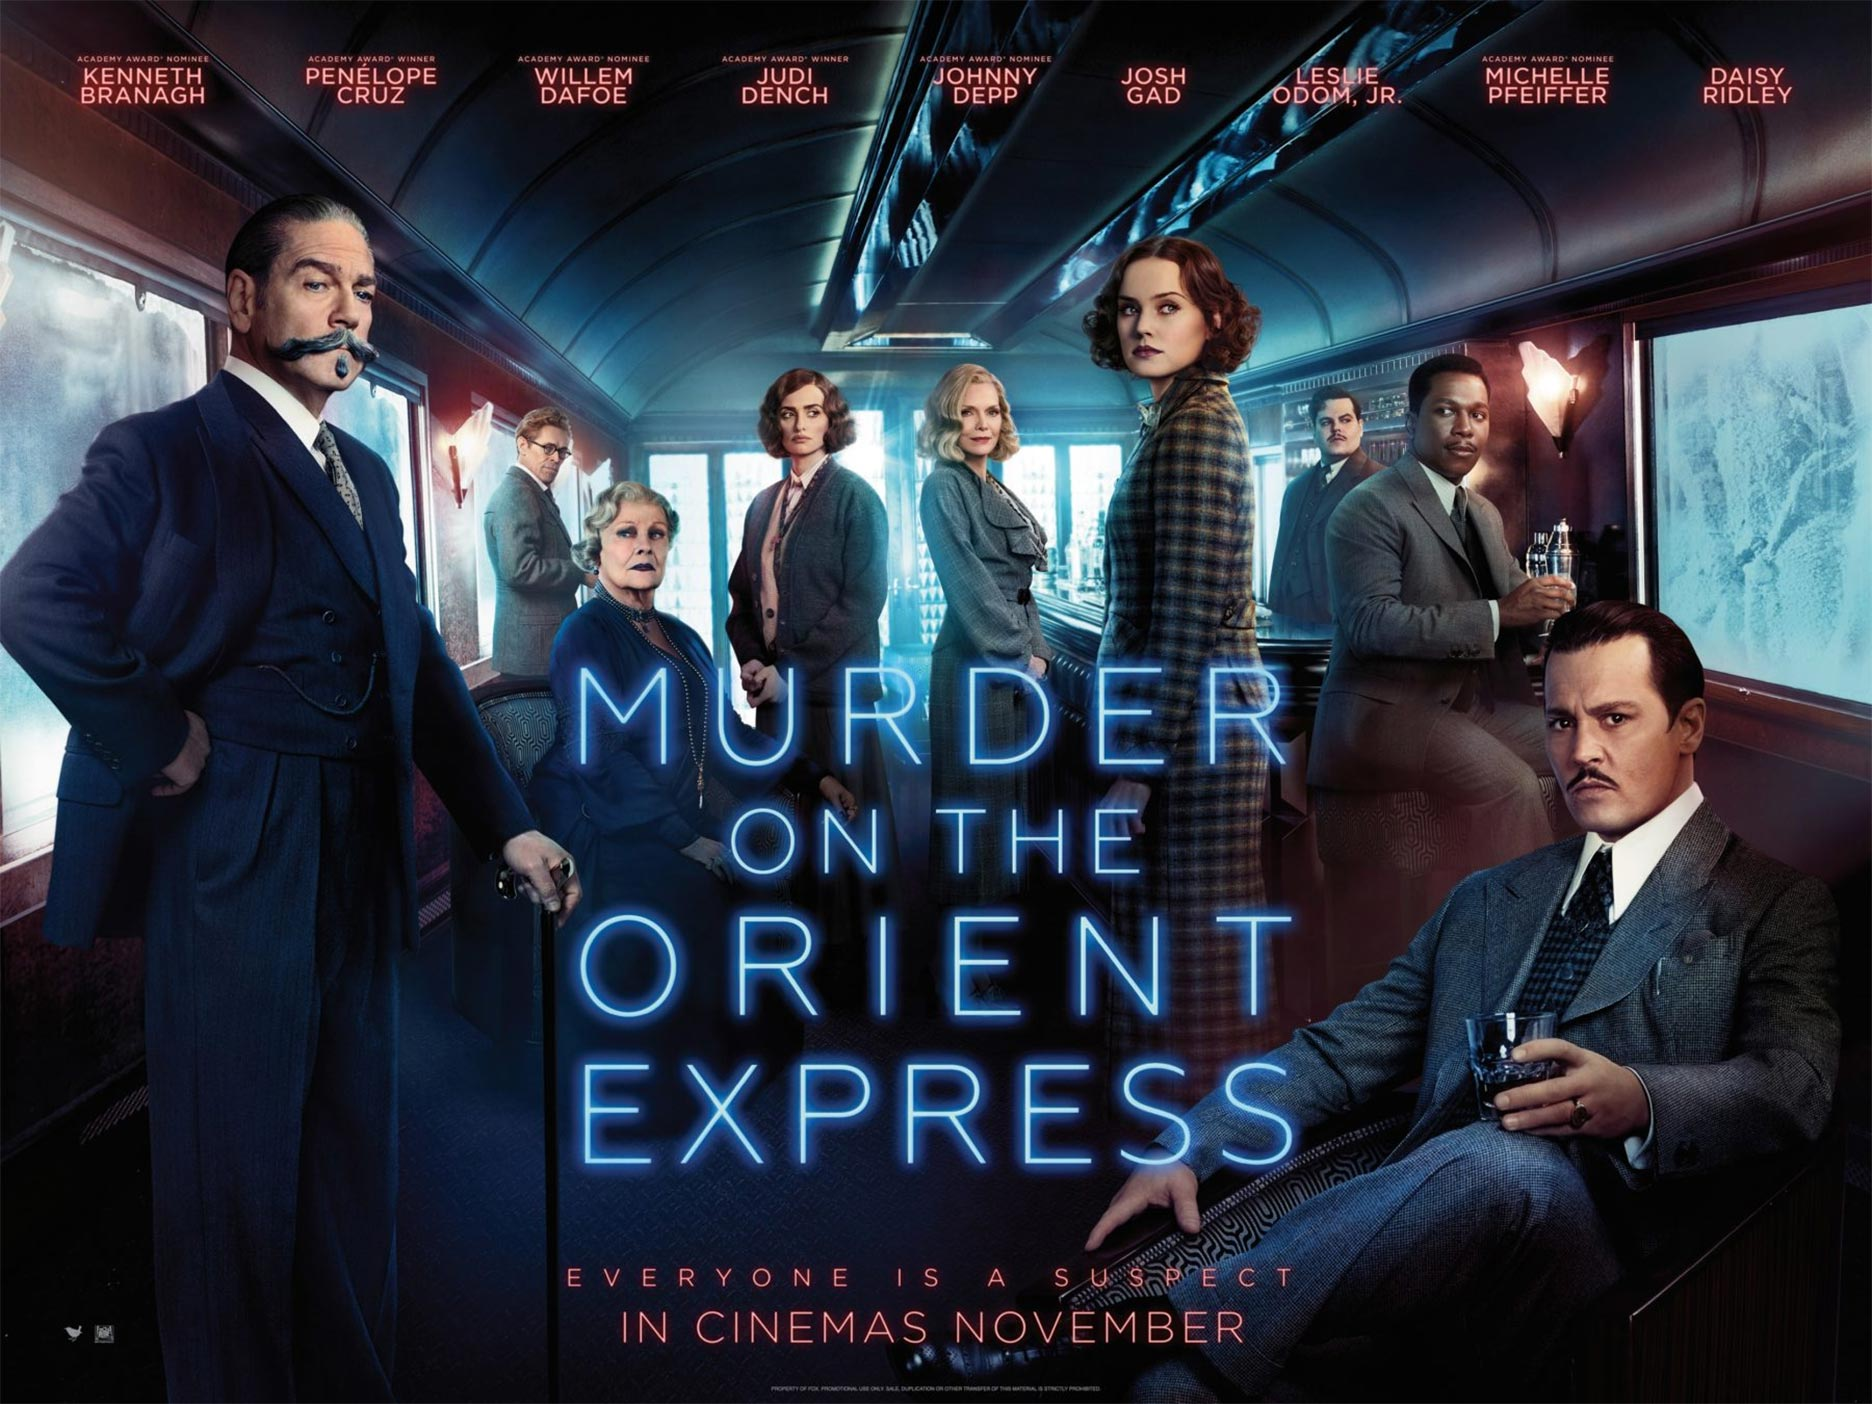 Murder on the Orient Express (2017) Movie Poster Google image from https://www.traileraddict.com/murder-on-the-orient-express/poster/3